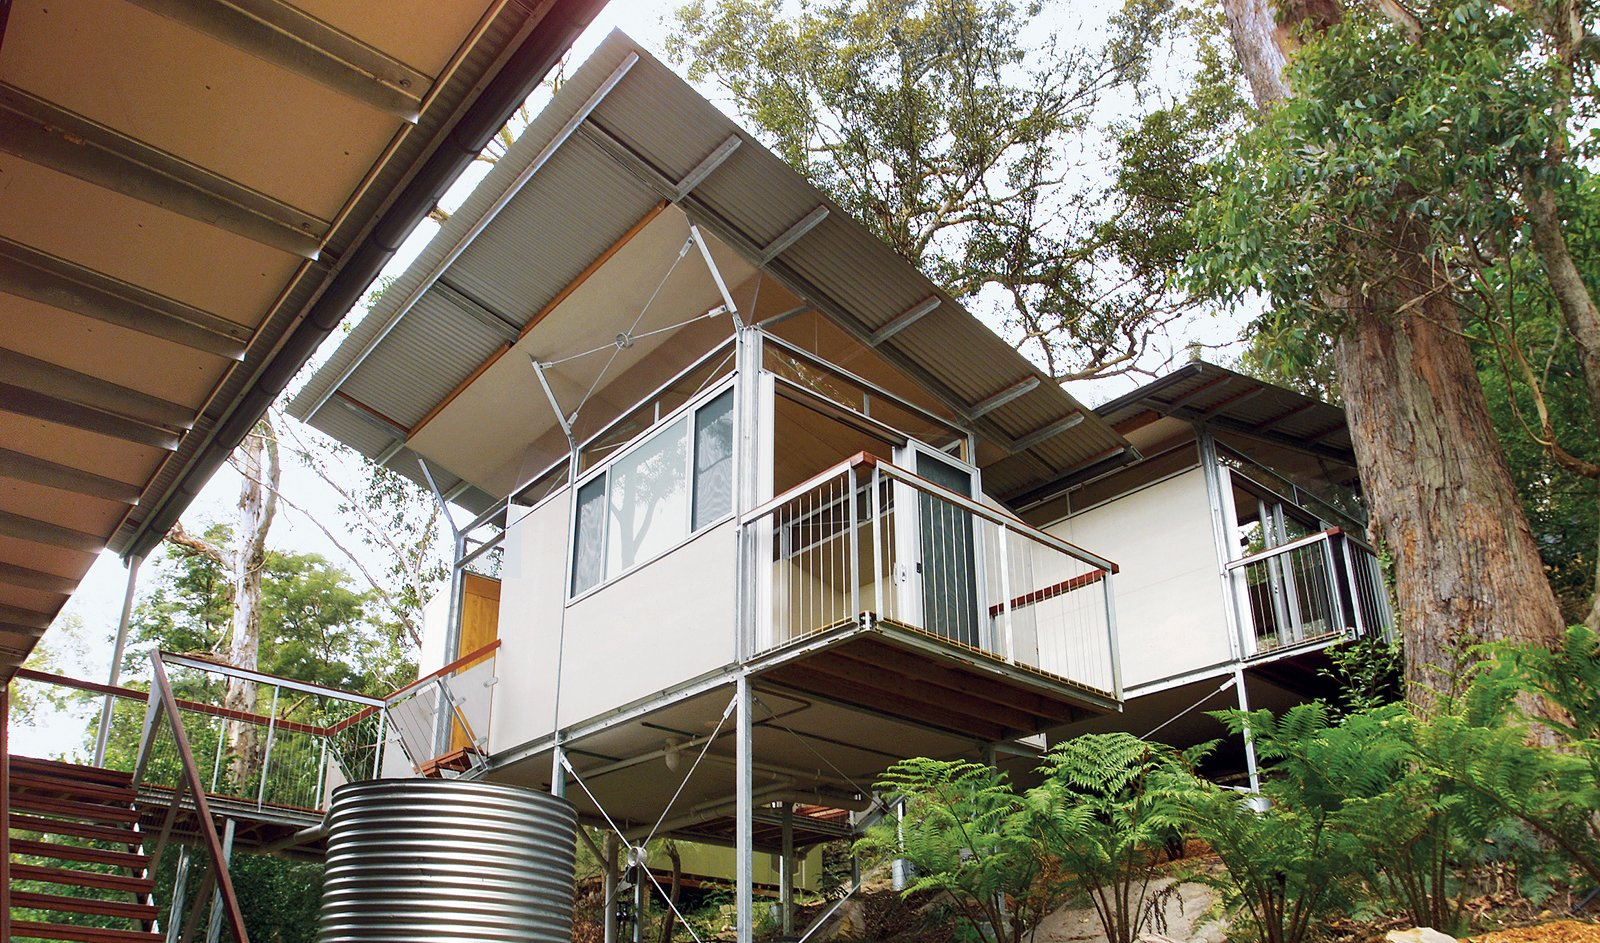 Remote living, especially on an island, requires a fair degree of self-sufficiency. Dangar Island has a limited water supply, so all the roofs on the Flood house were designed to collect rainwater and channel it into a 6,600-gallon tank.